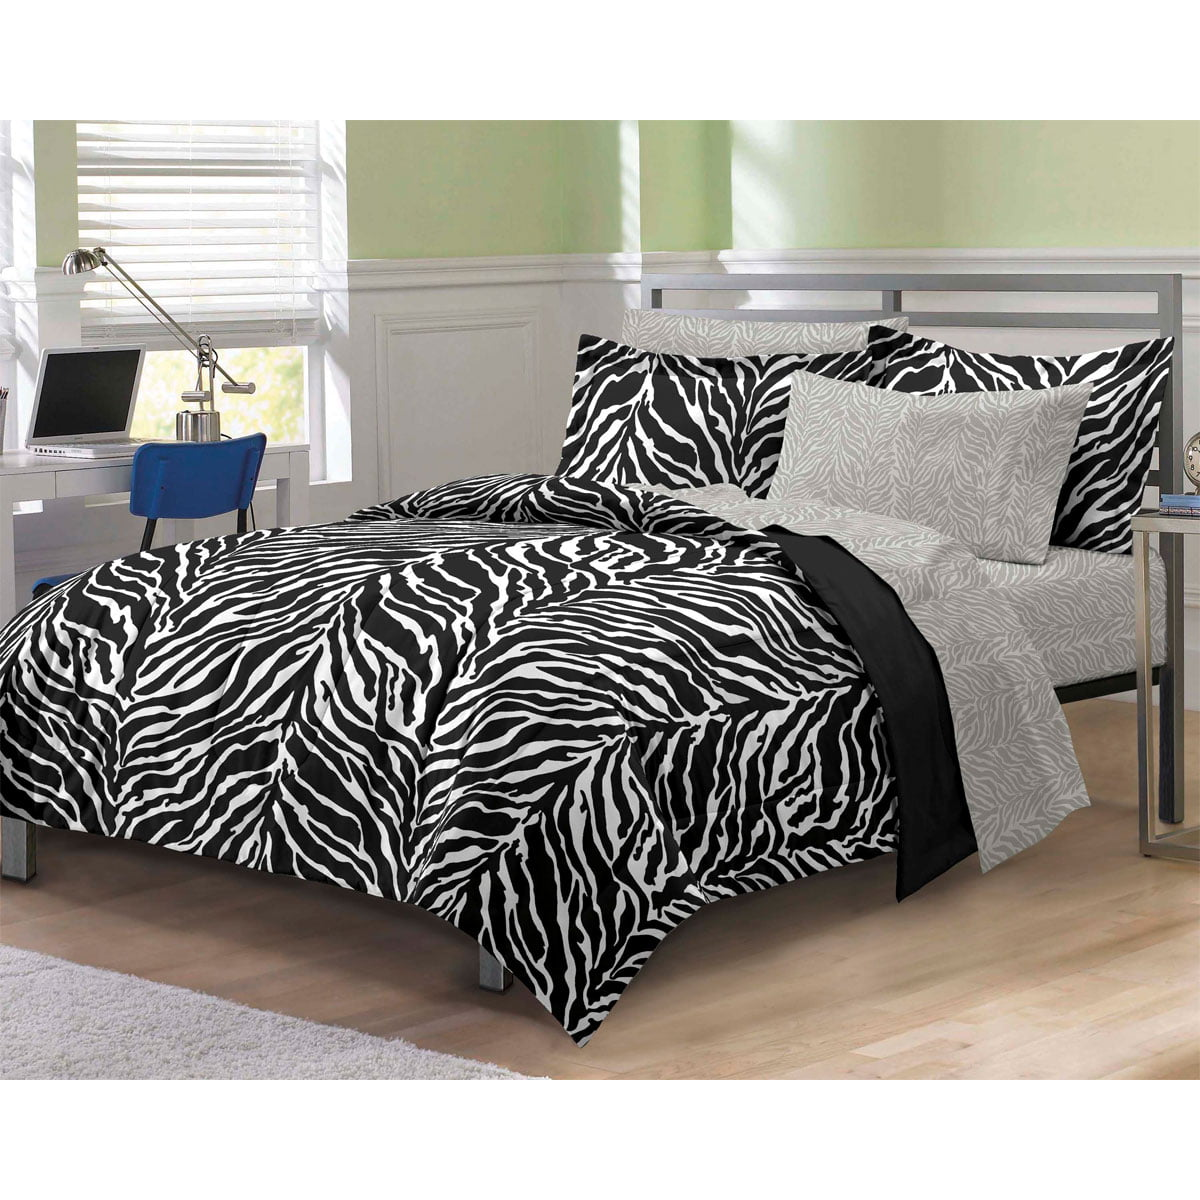 Good My Room Zebra Complete Bed in a Bag Bedding Set Black White Walmart